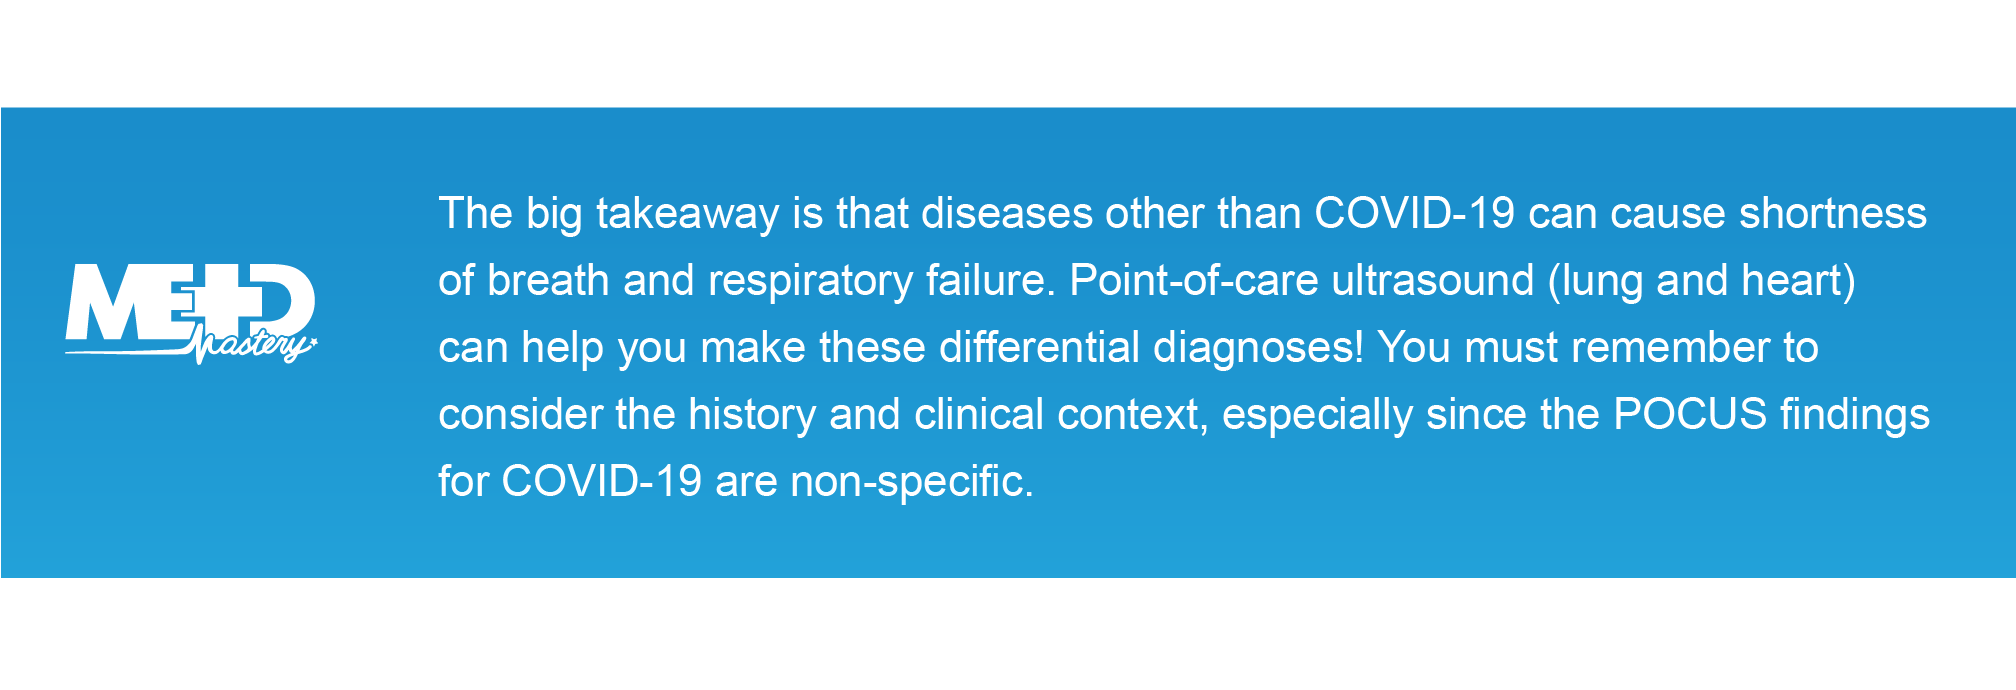 The big takeaway is that diseases other than COVID-19 can cause shortness of breath and respiratory failure. Point-of-care ultrasound (lungandheart) can help you make these differential diagnoses! You must remember to consider the history and clinical context,especially since the POCUS findings for COVID-19 are non-specific.